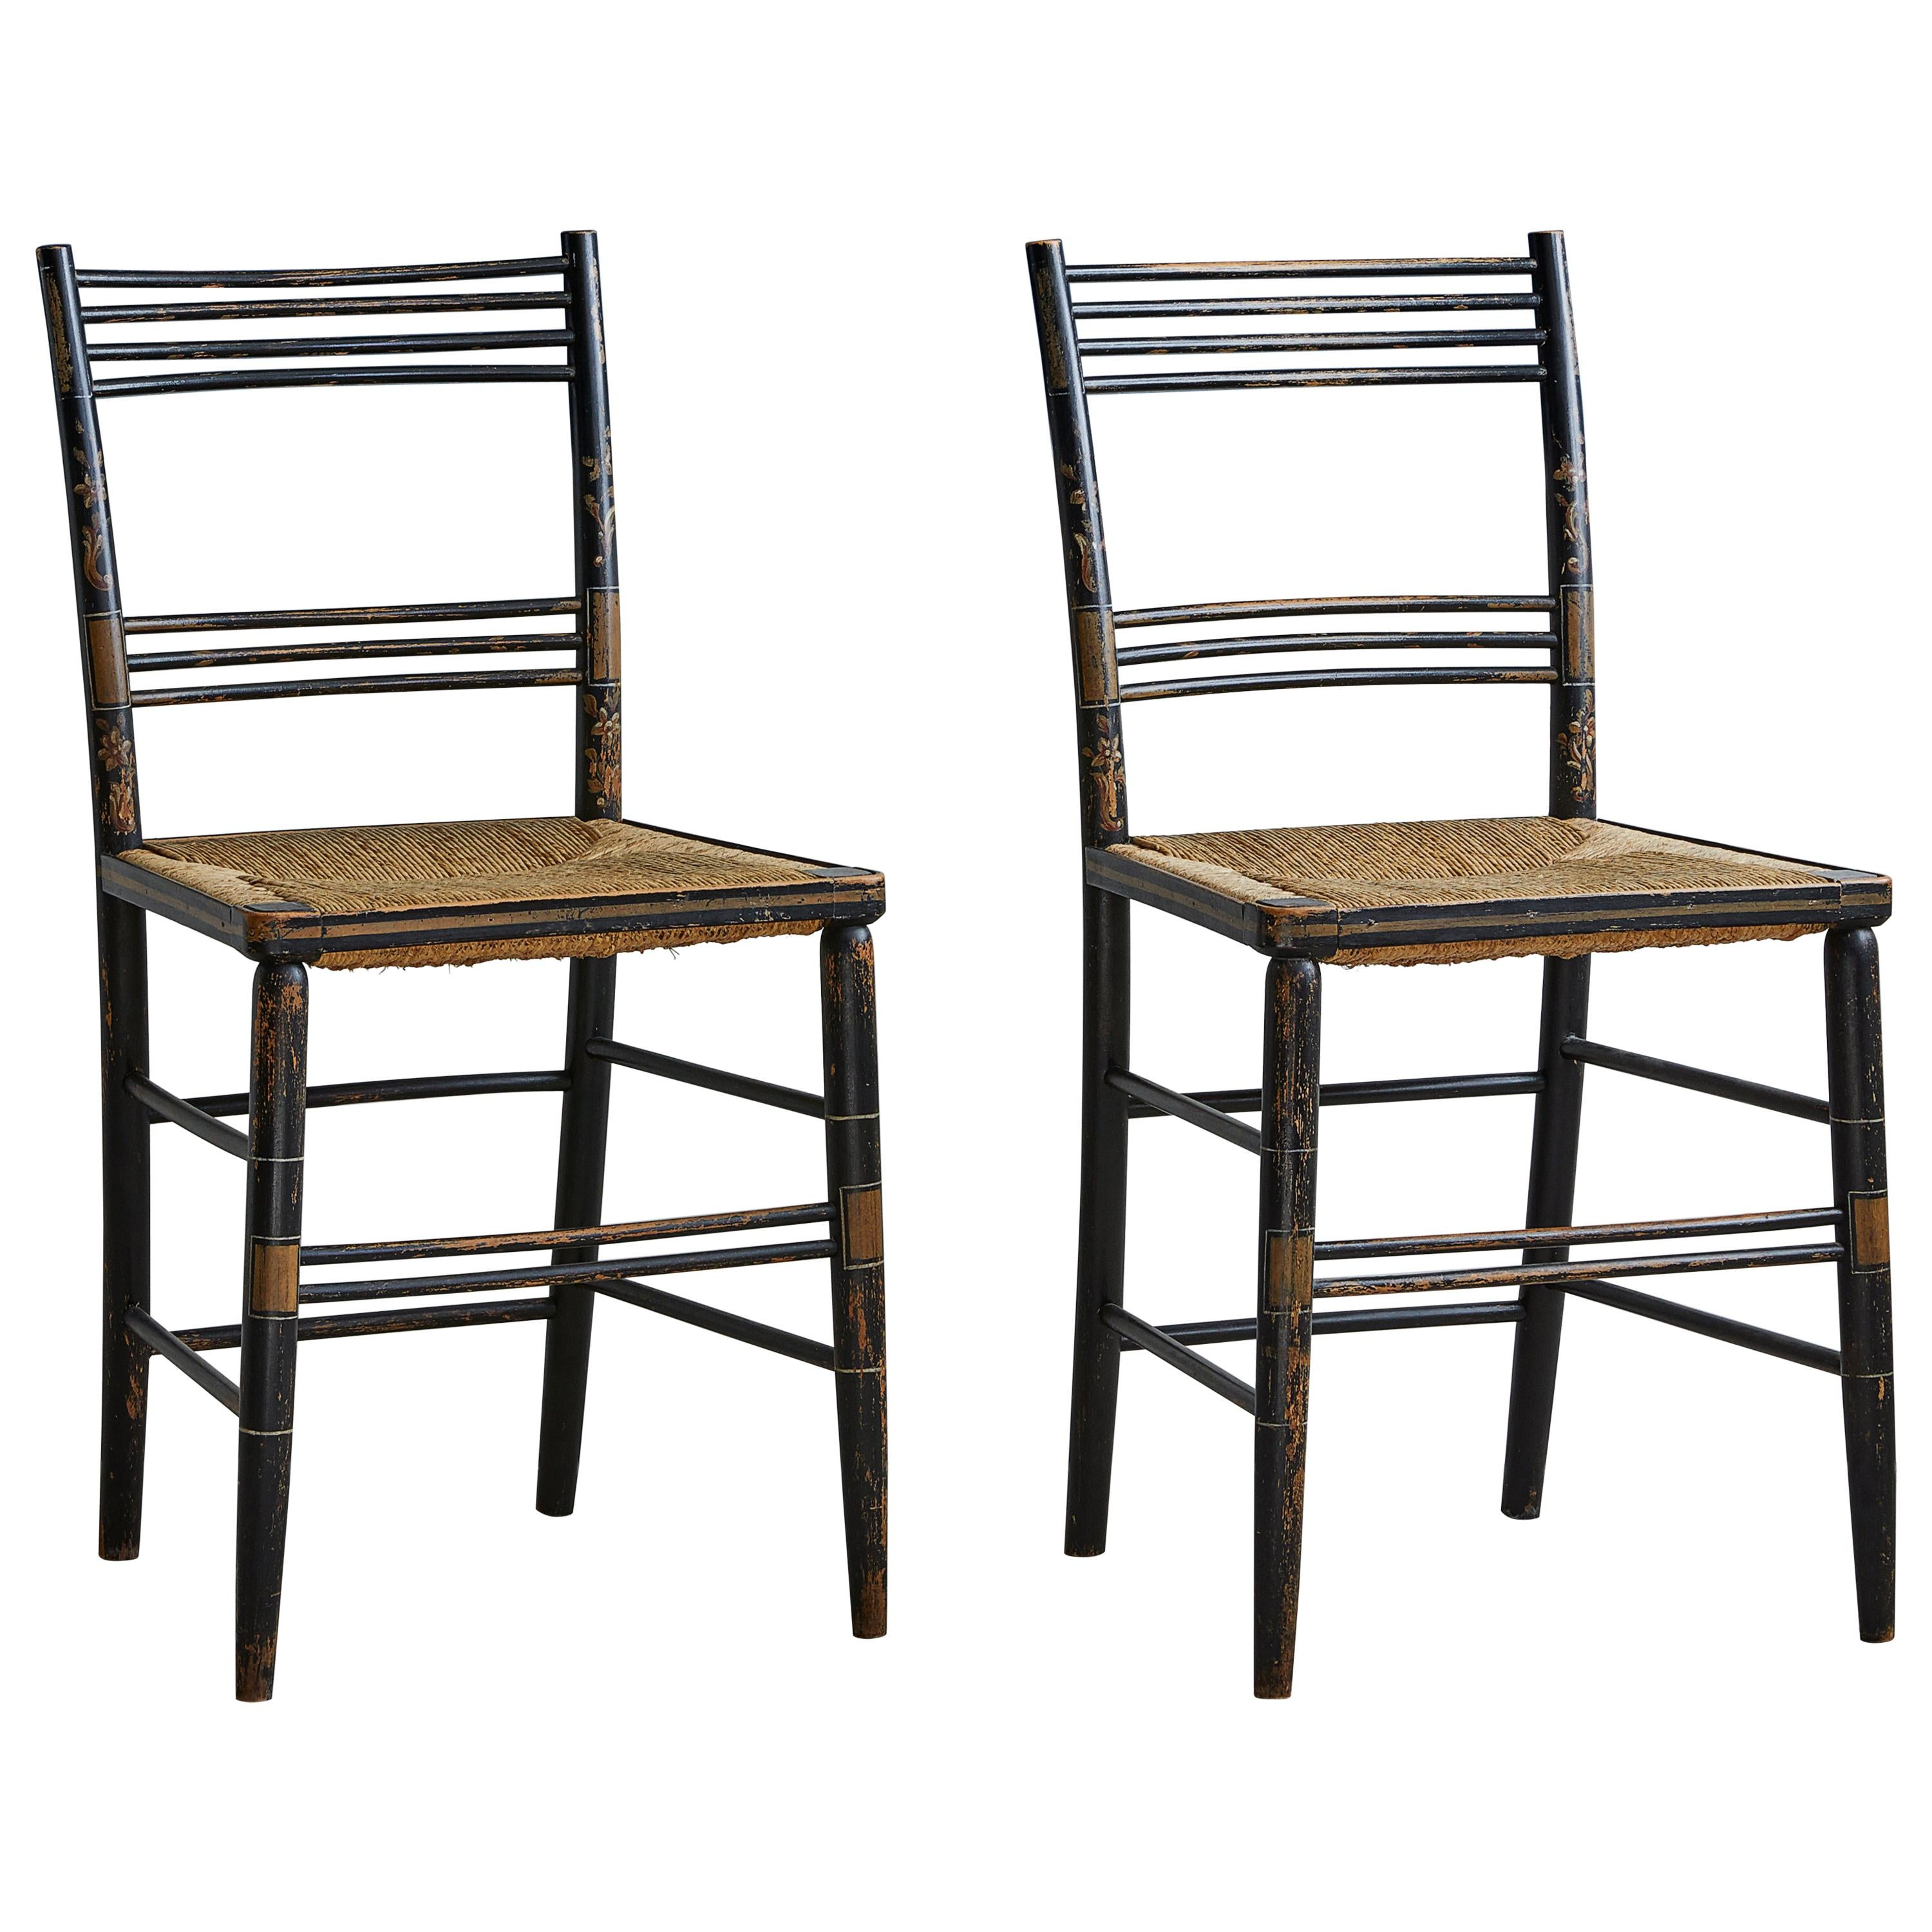 Pair Of Painted Wooden Chairs With Woven Seat For Sale